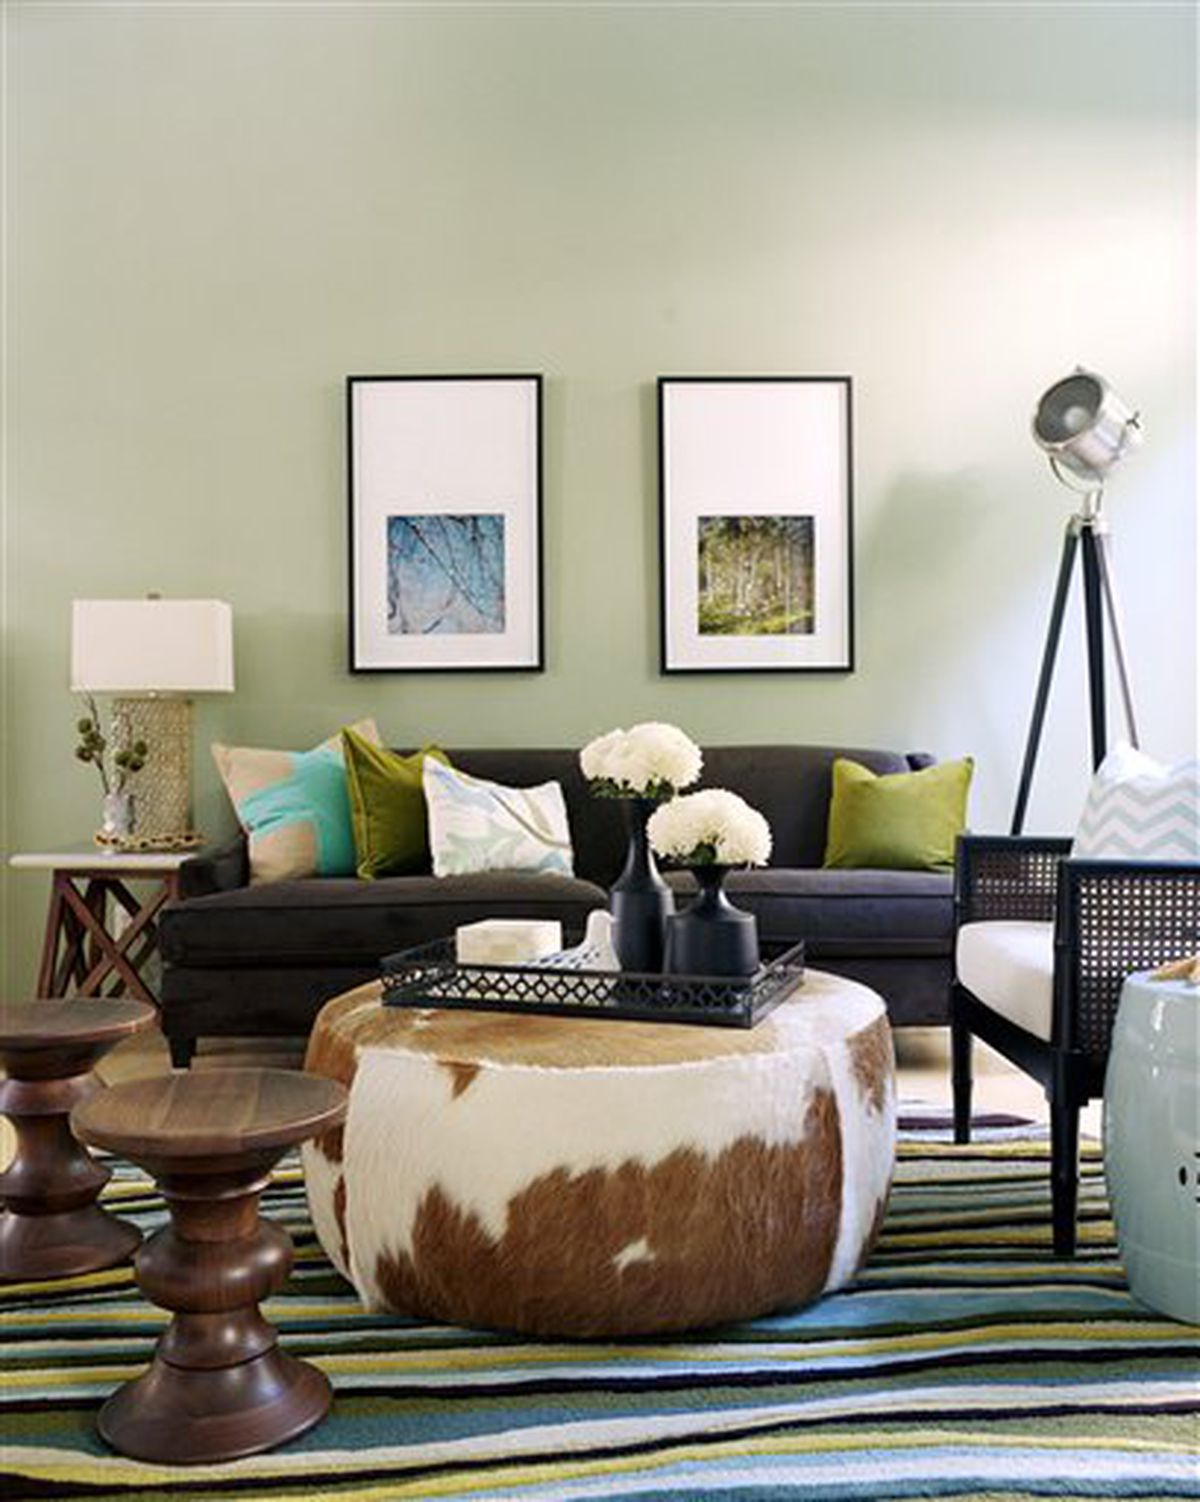 Ask Jennifer Adams Is A Sofa Or Sectional Better For Small Living Room